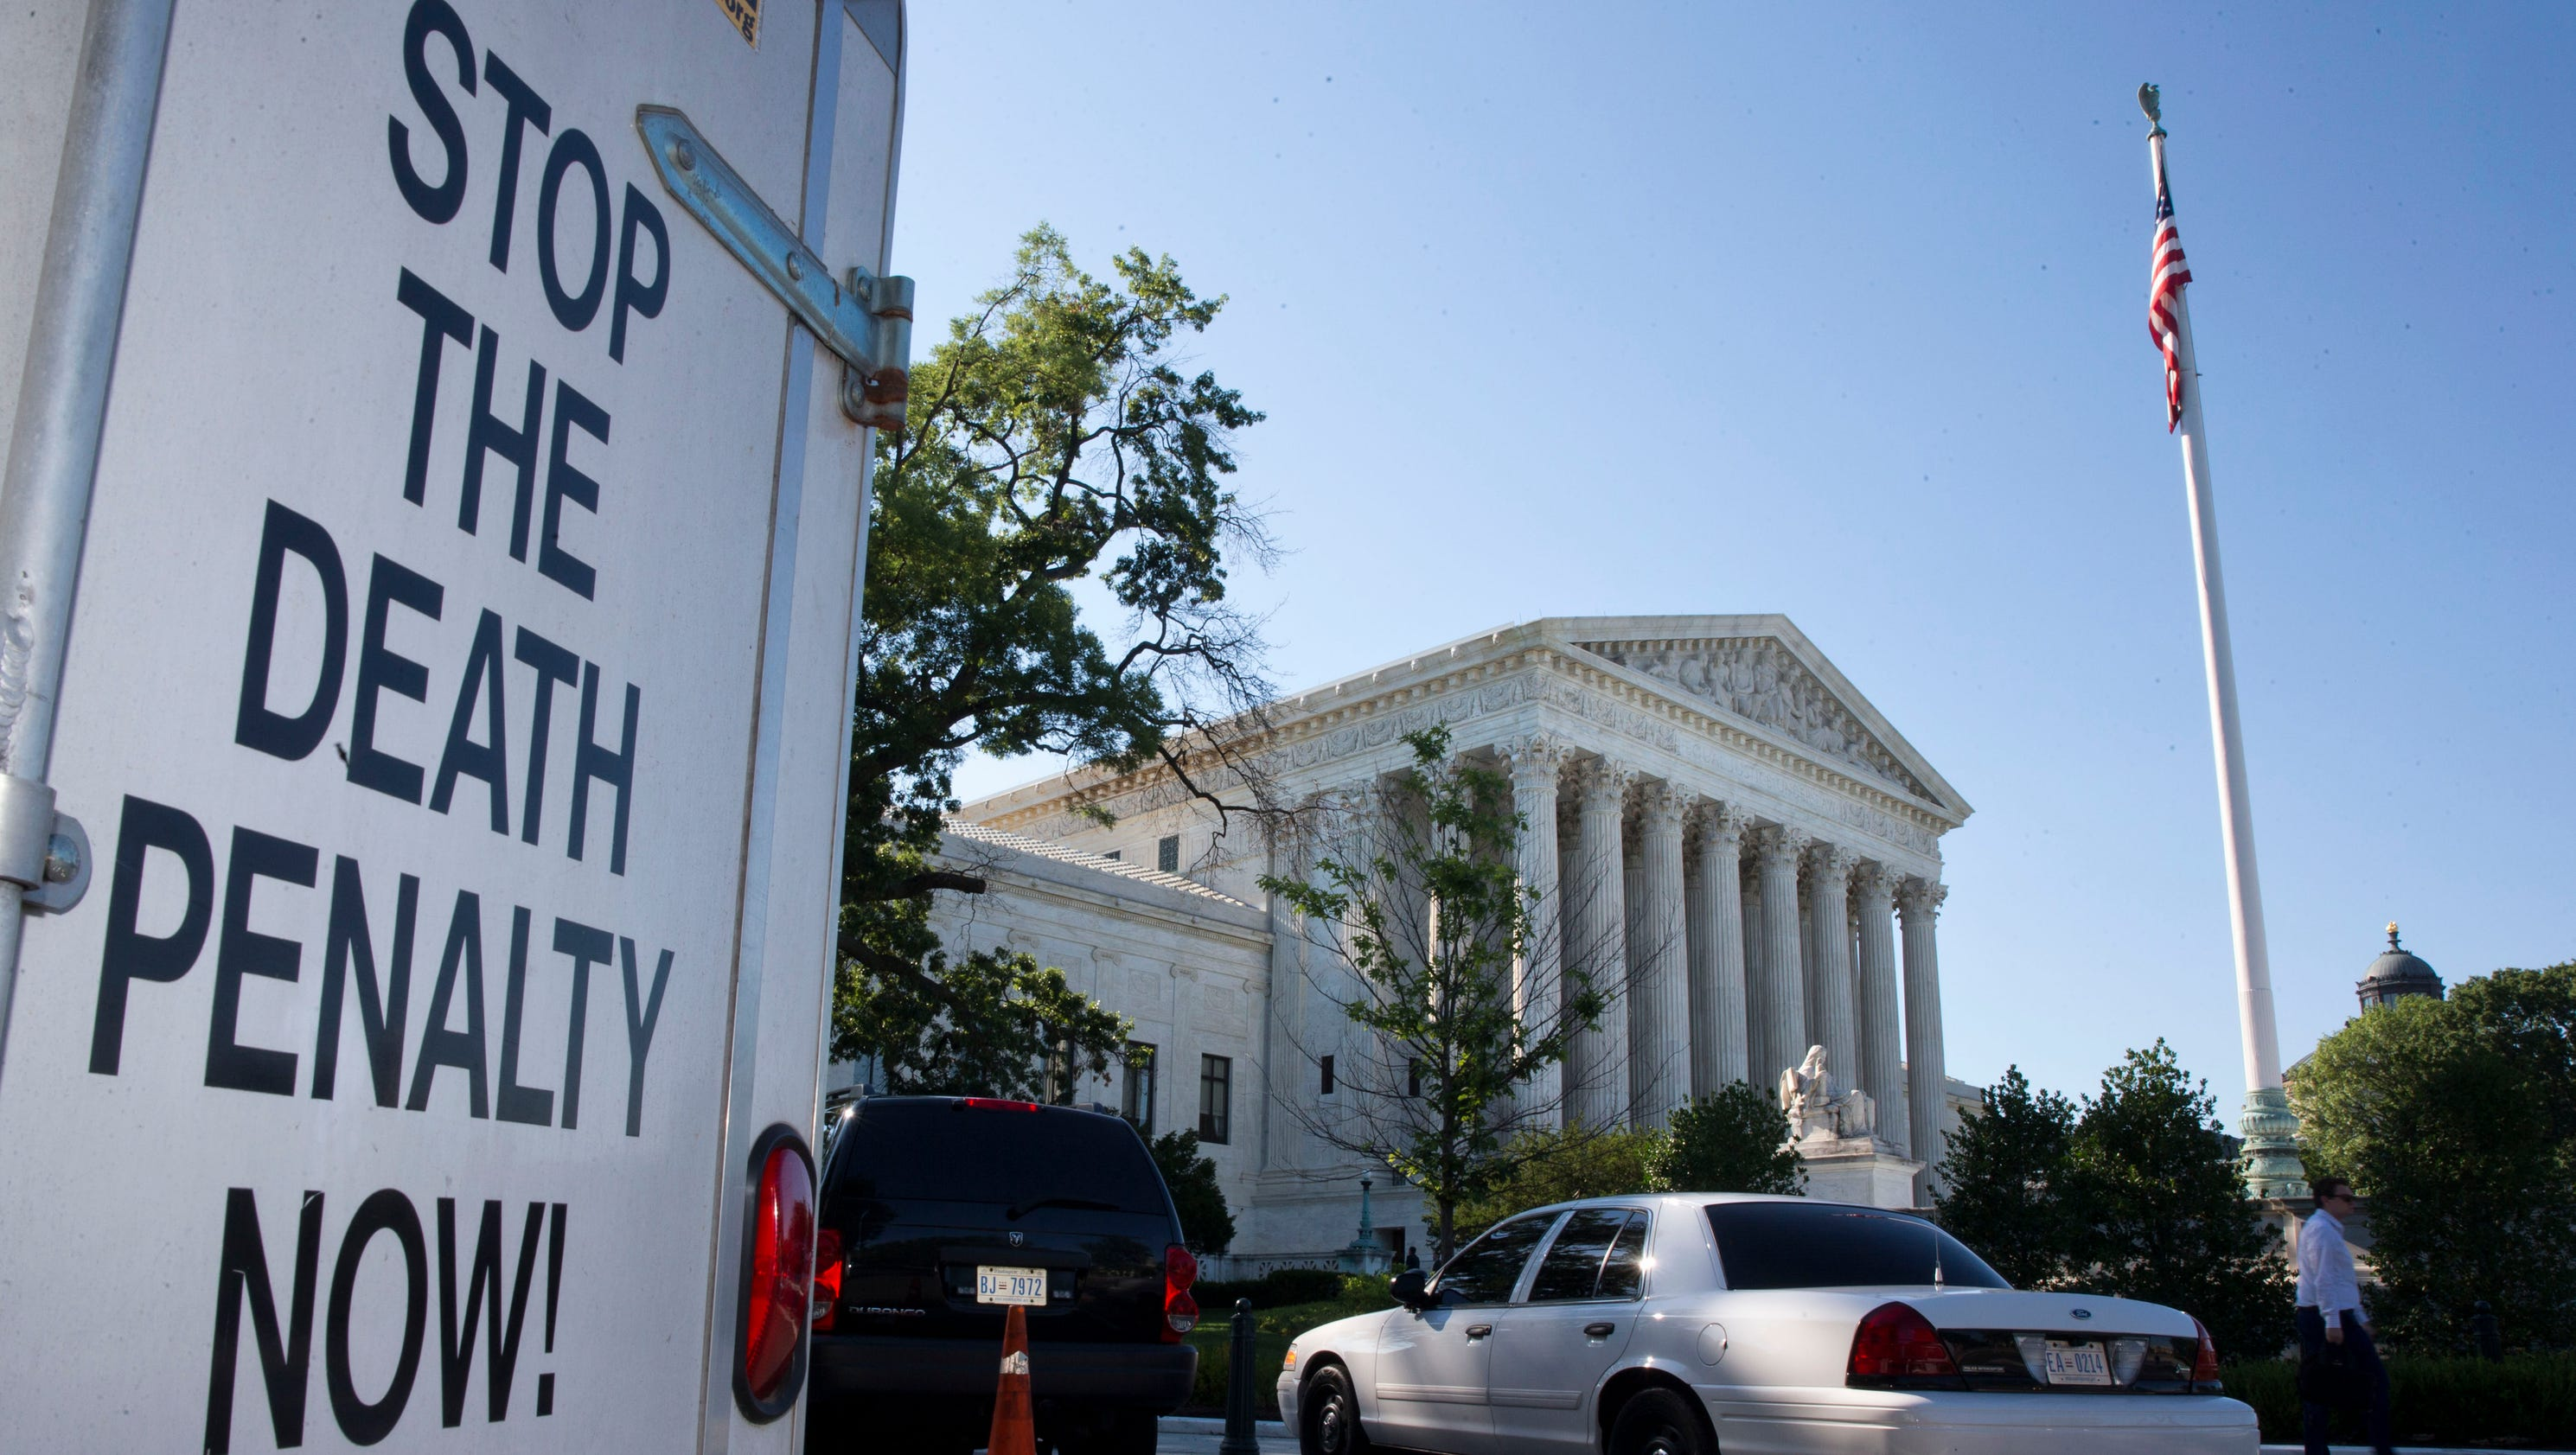 Death penalty divides Supreme Court after Scalia's death